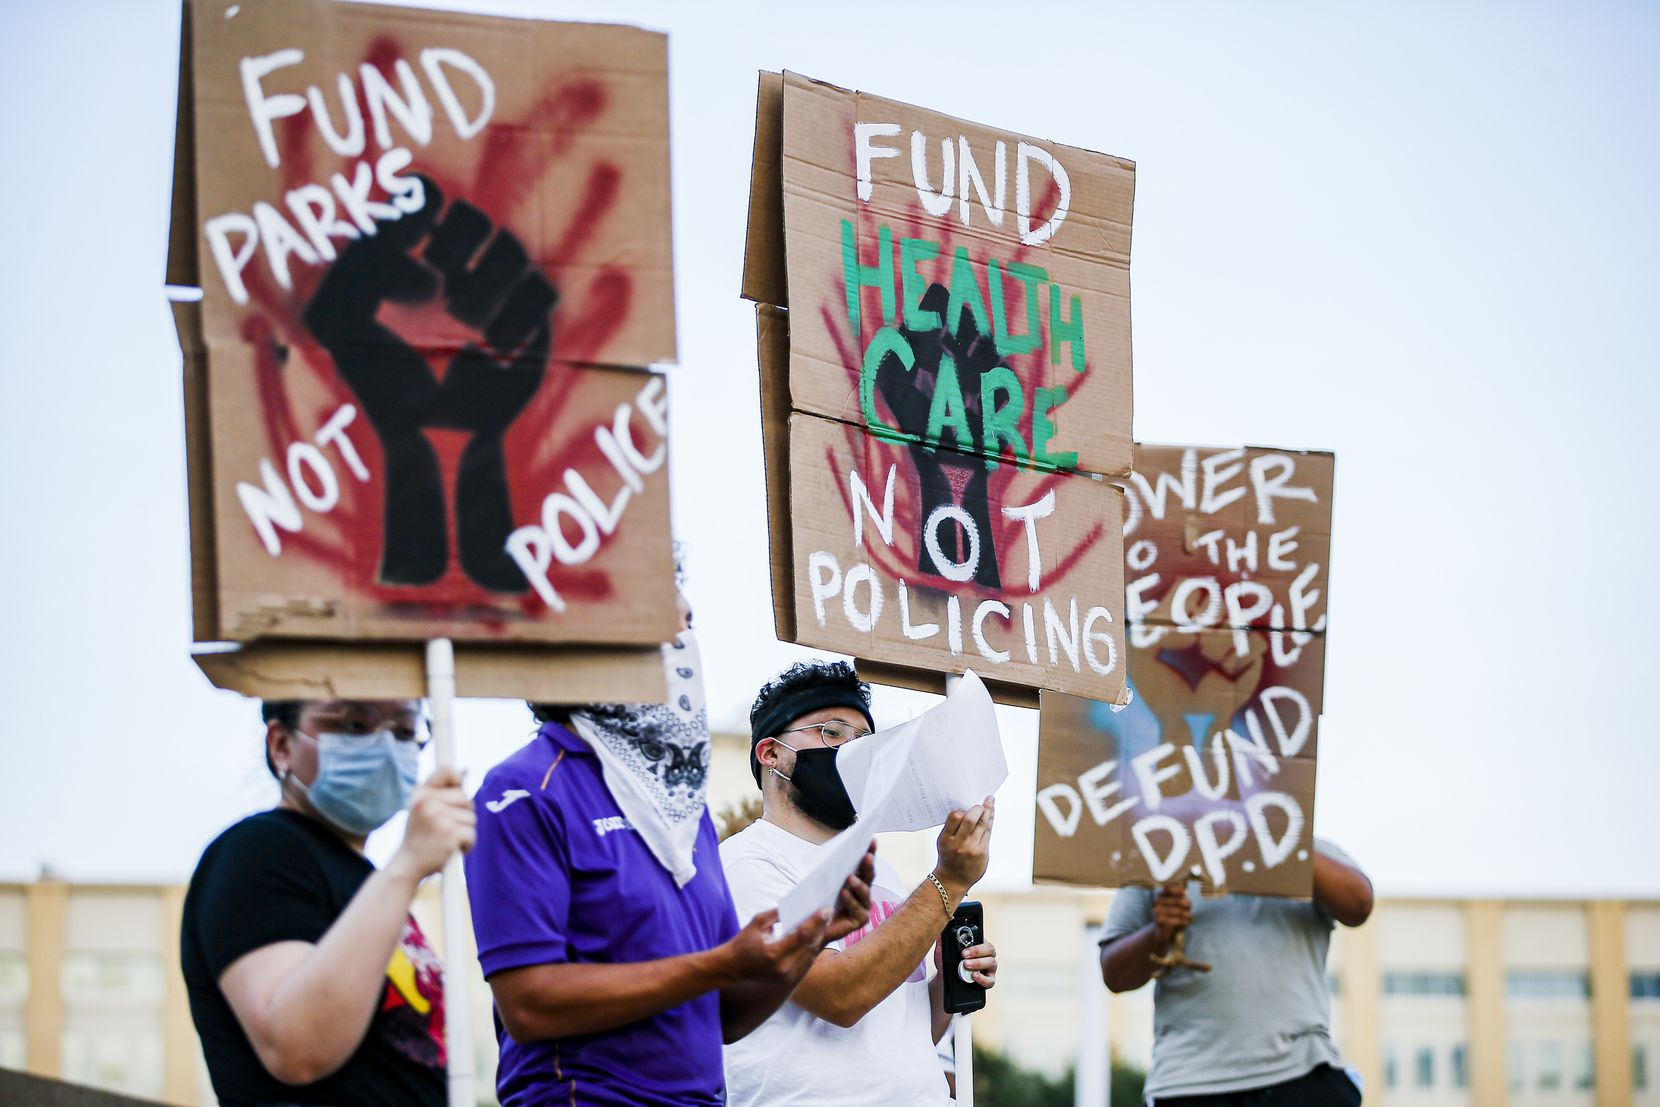 Demonstrators hold up signs demanding that the Dallas Police Departments budget be reduced during a Peoples Town Hall hosted by the In Defense Of Black Lives Dallas organization on the steps of Dallas City Hall in August 2020. The current budget debate is particularly heated due to calls from local activists to cut more money from the police budget — at a time when crime is on the uptick.